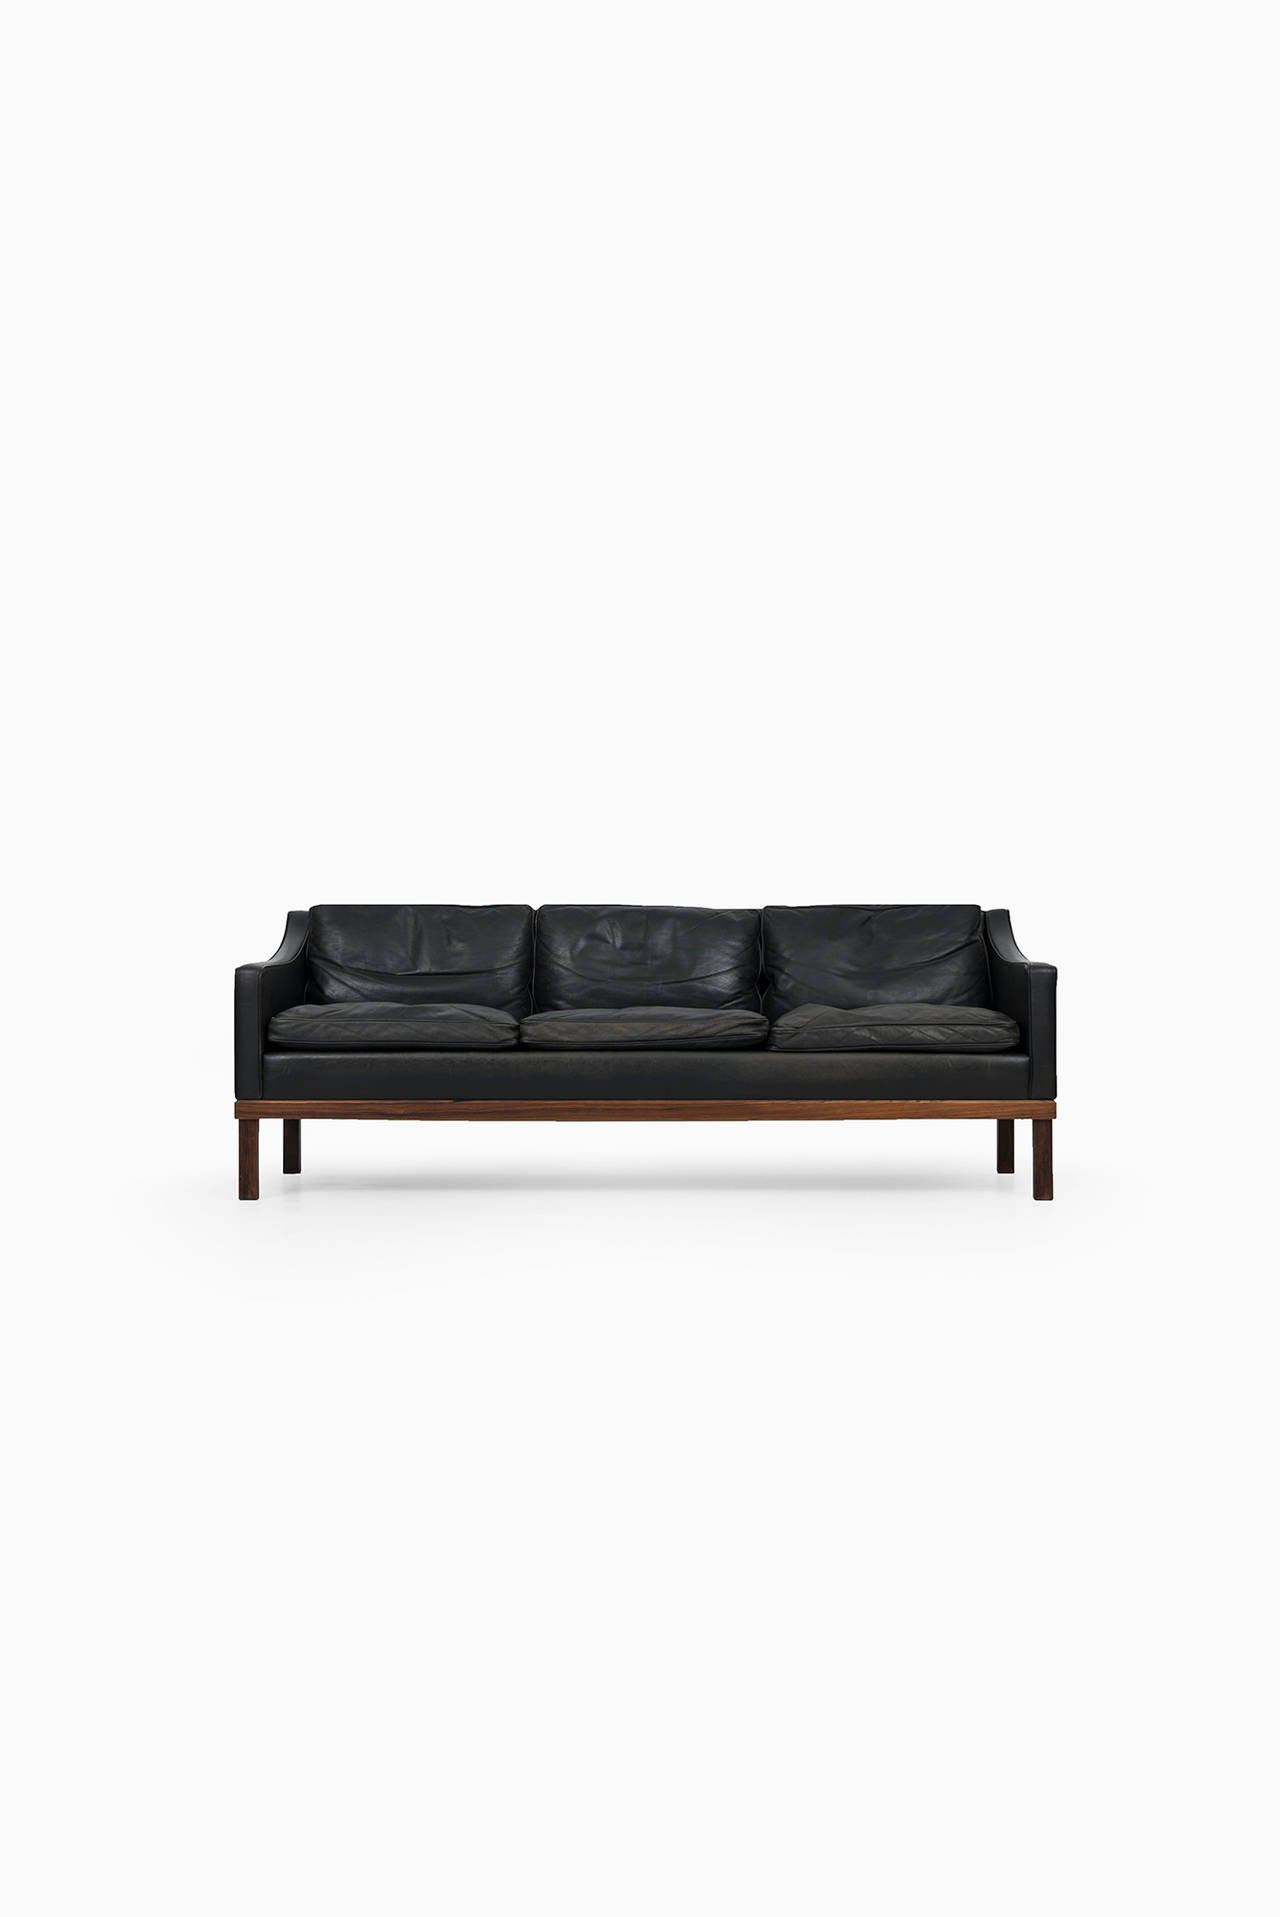 Mid-Century Modern Ib Kofod-Larsen leather sofa by OPE in Sweden For Sale